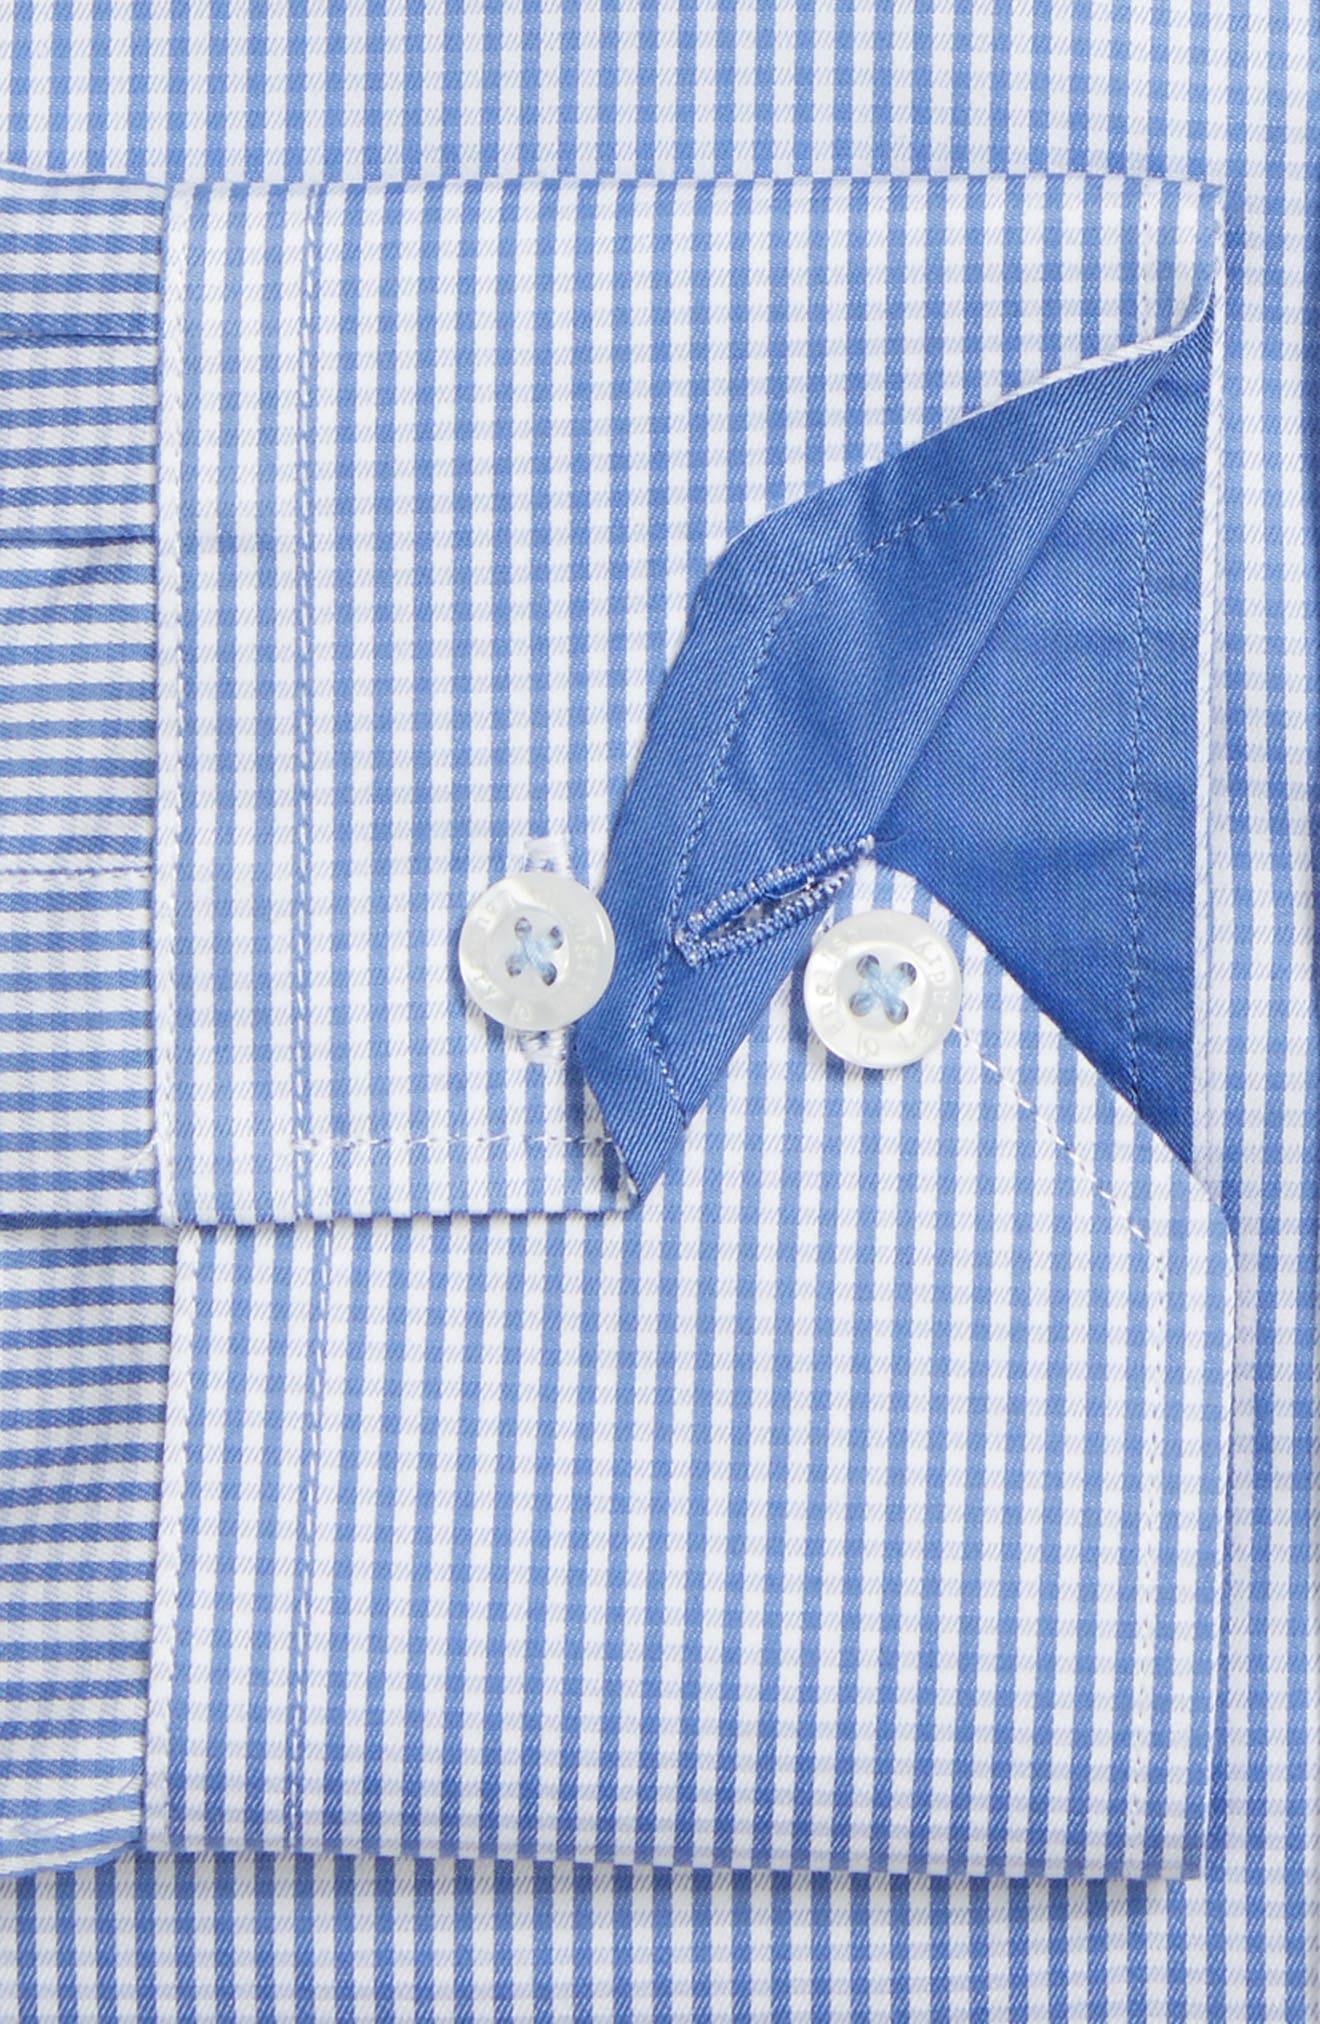 Trim Fit Check Dress Shirt,                             Alternate thumbnail 3, color,